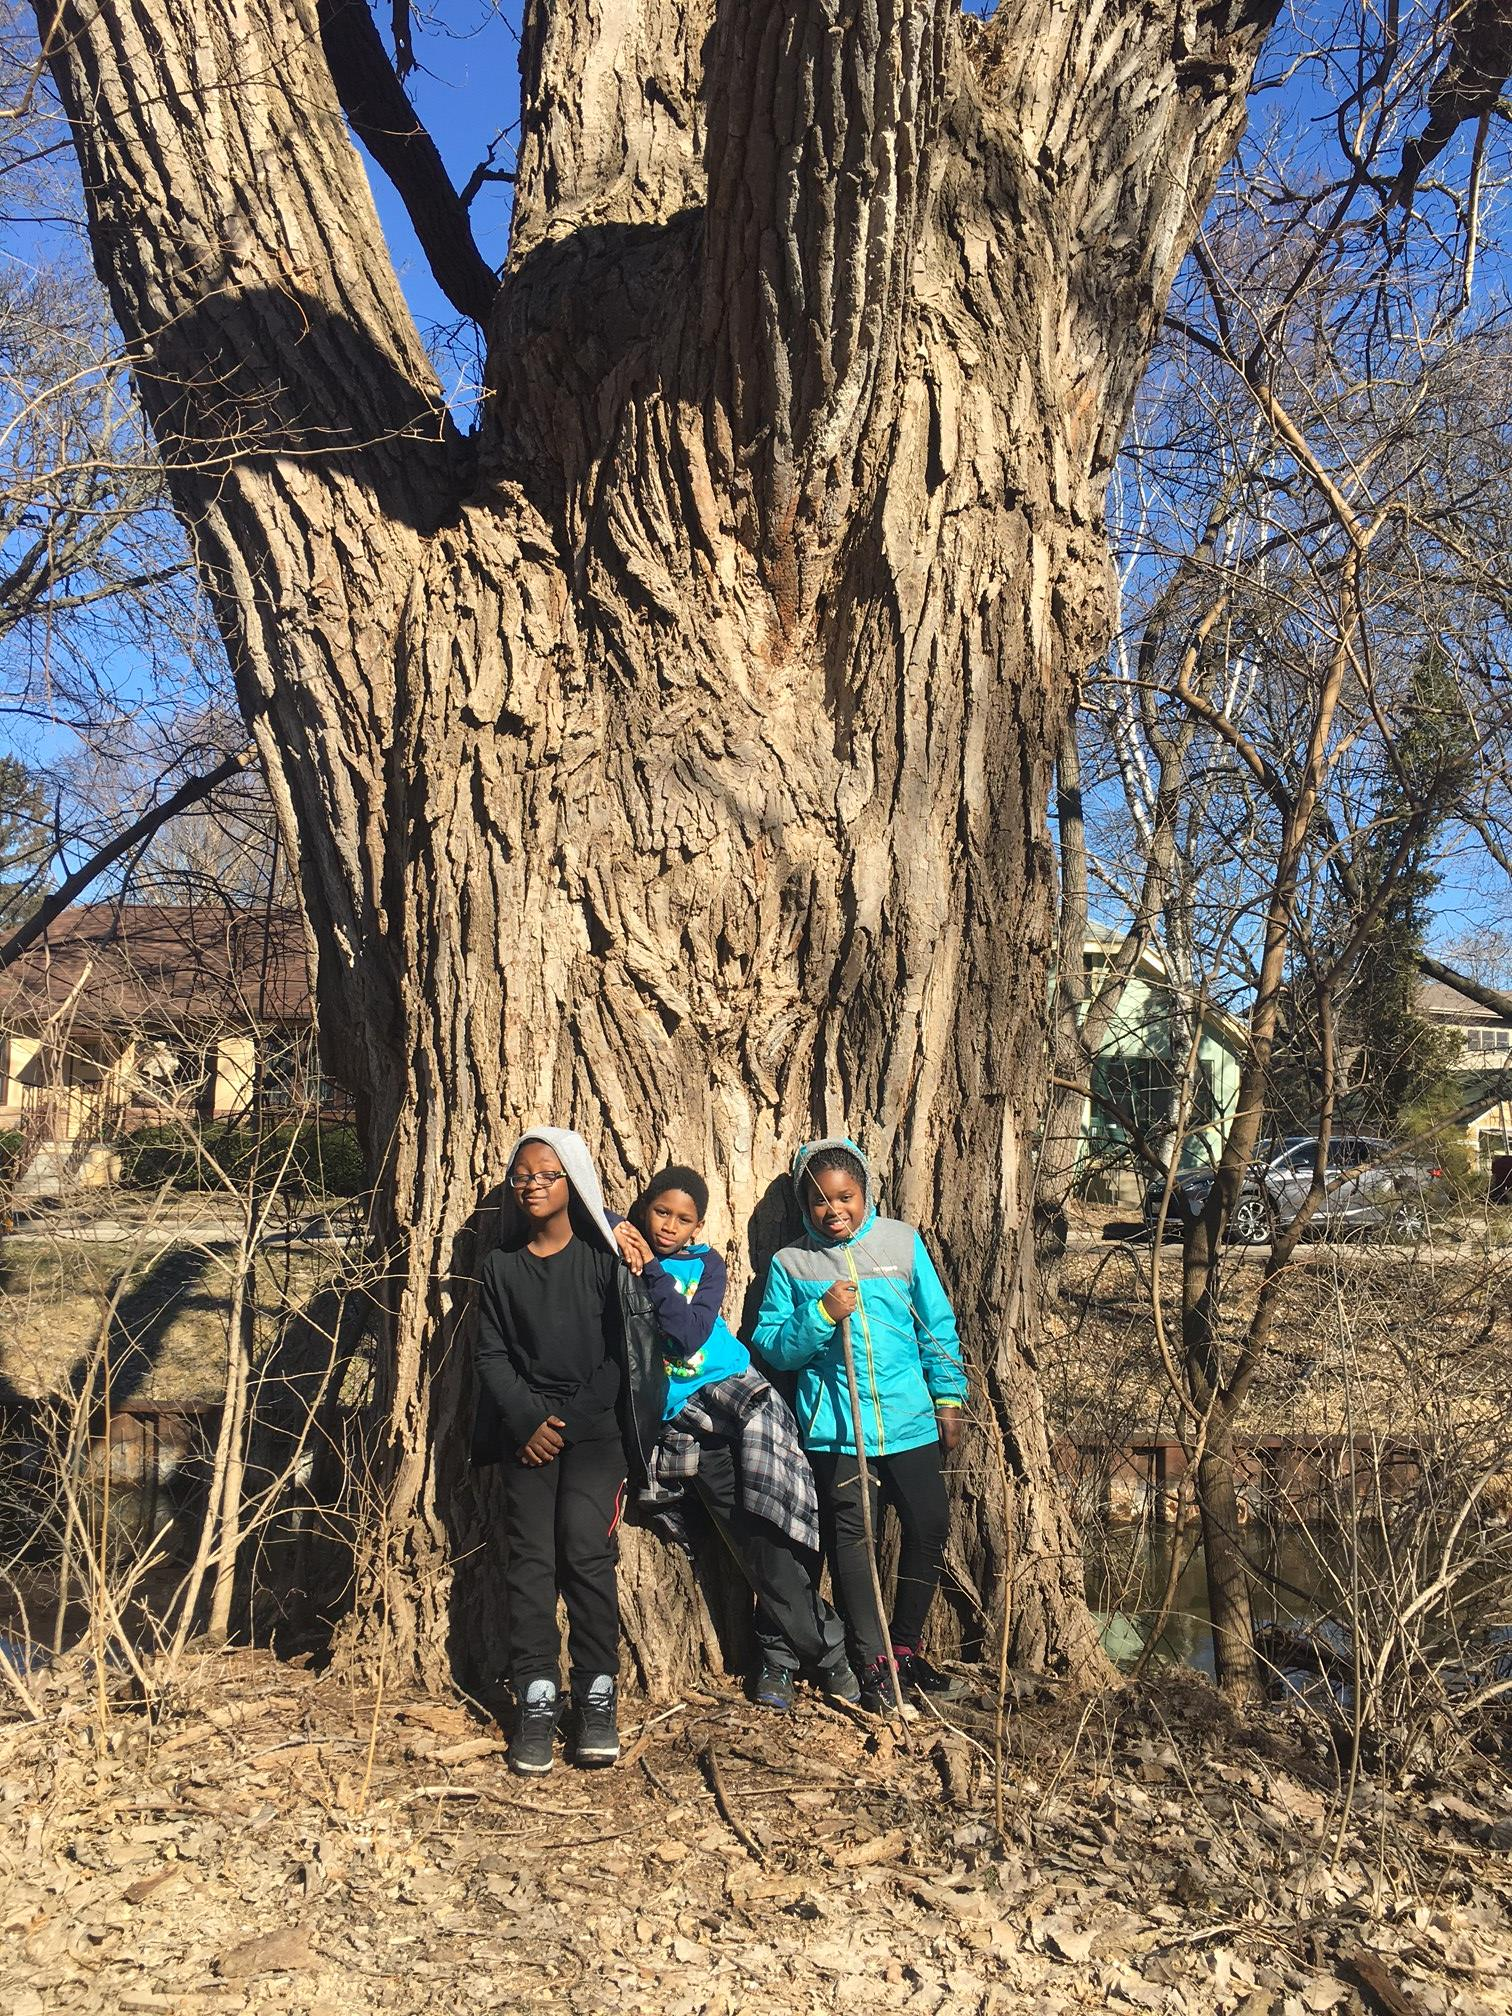 This tree has many stories, which these kids can tell you about!